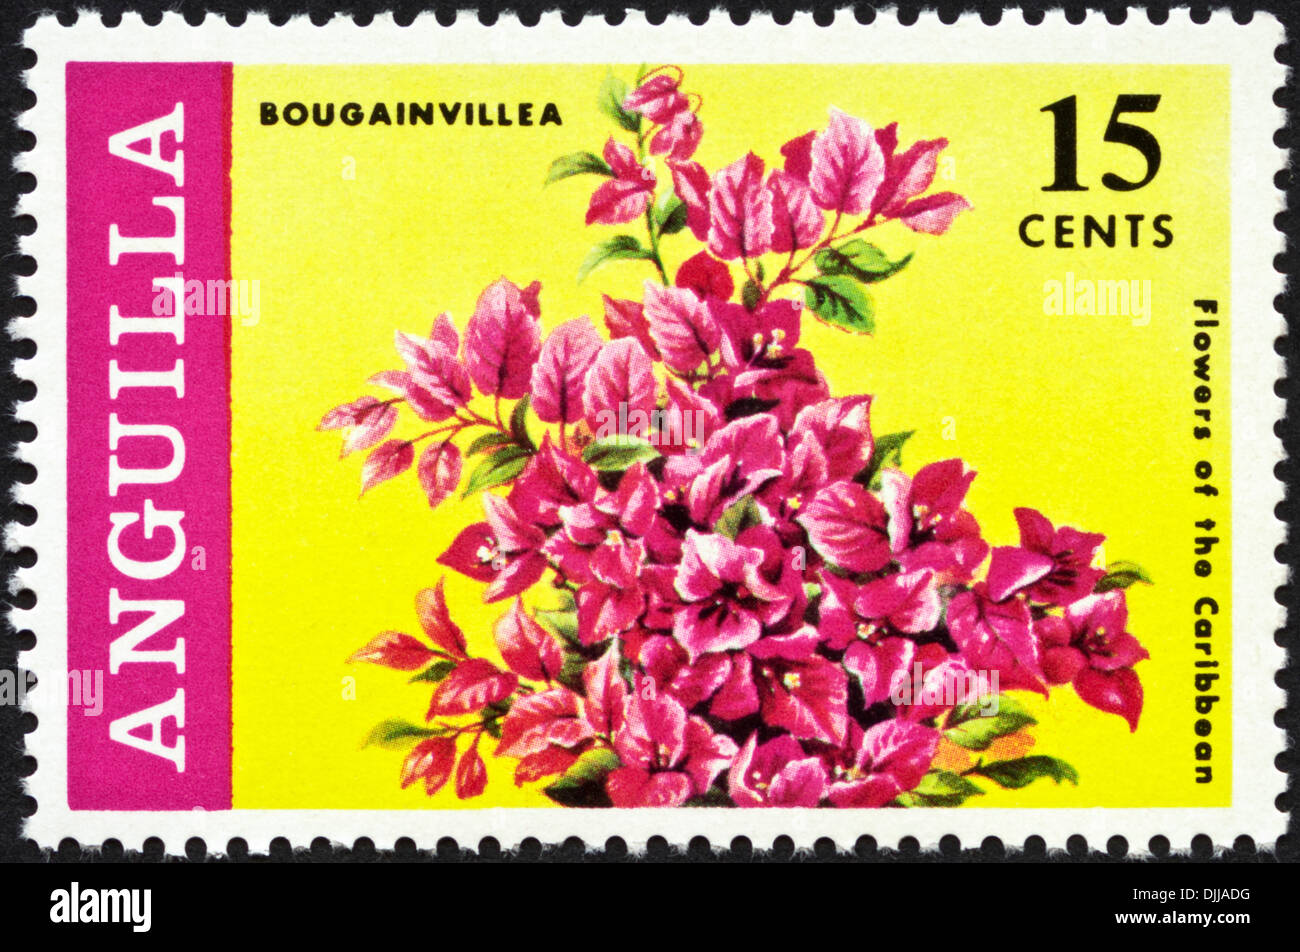 postage stamp Anguilla 15 cents featuring Flowers of the Caribbean issued 1969 - Stock Image